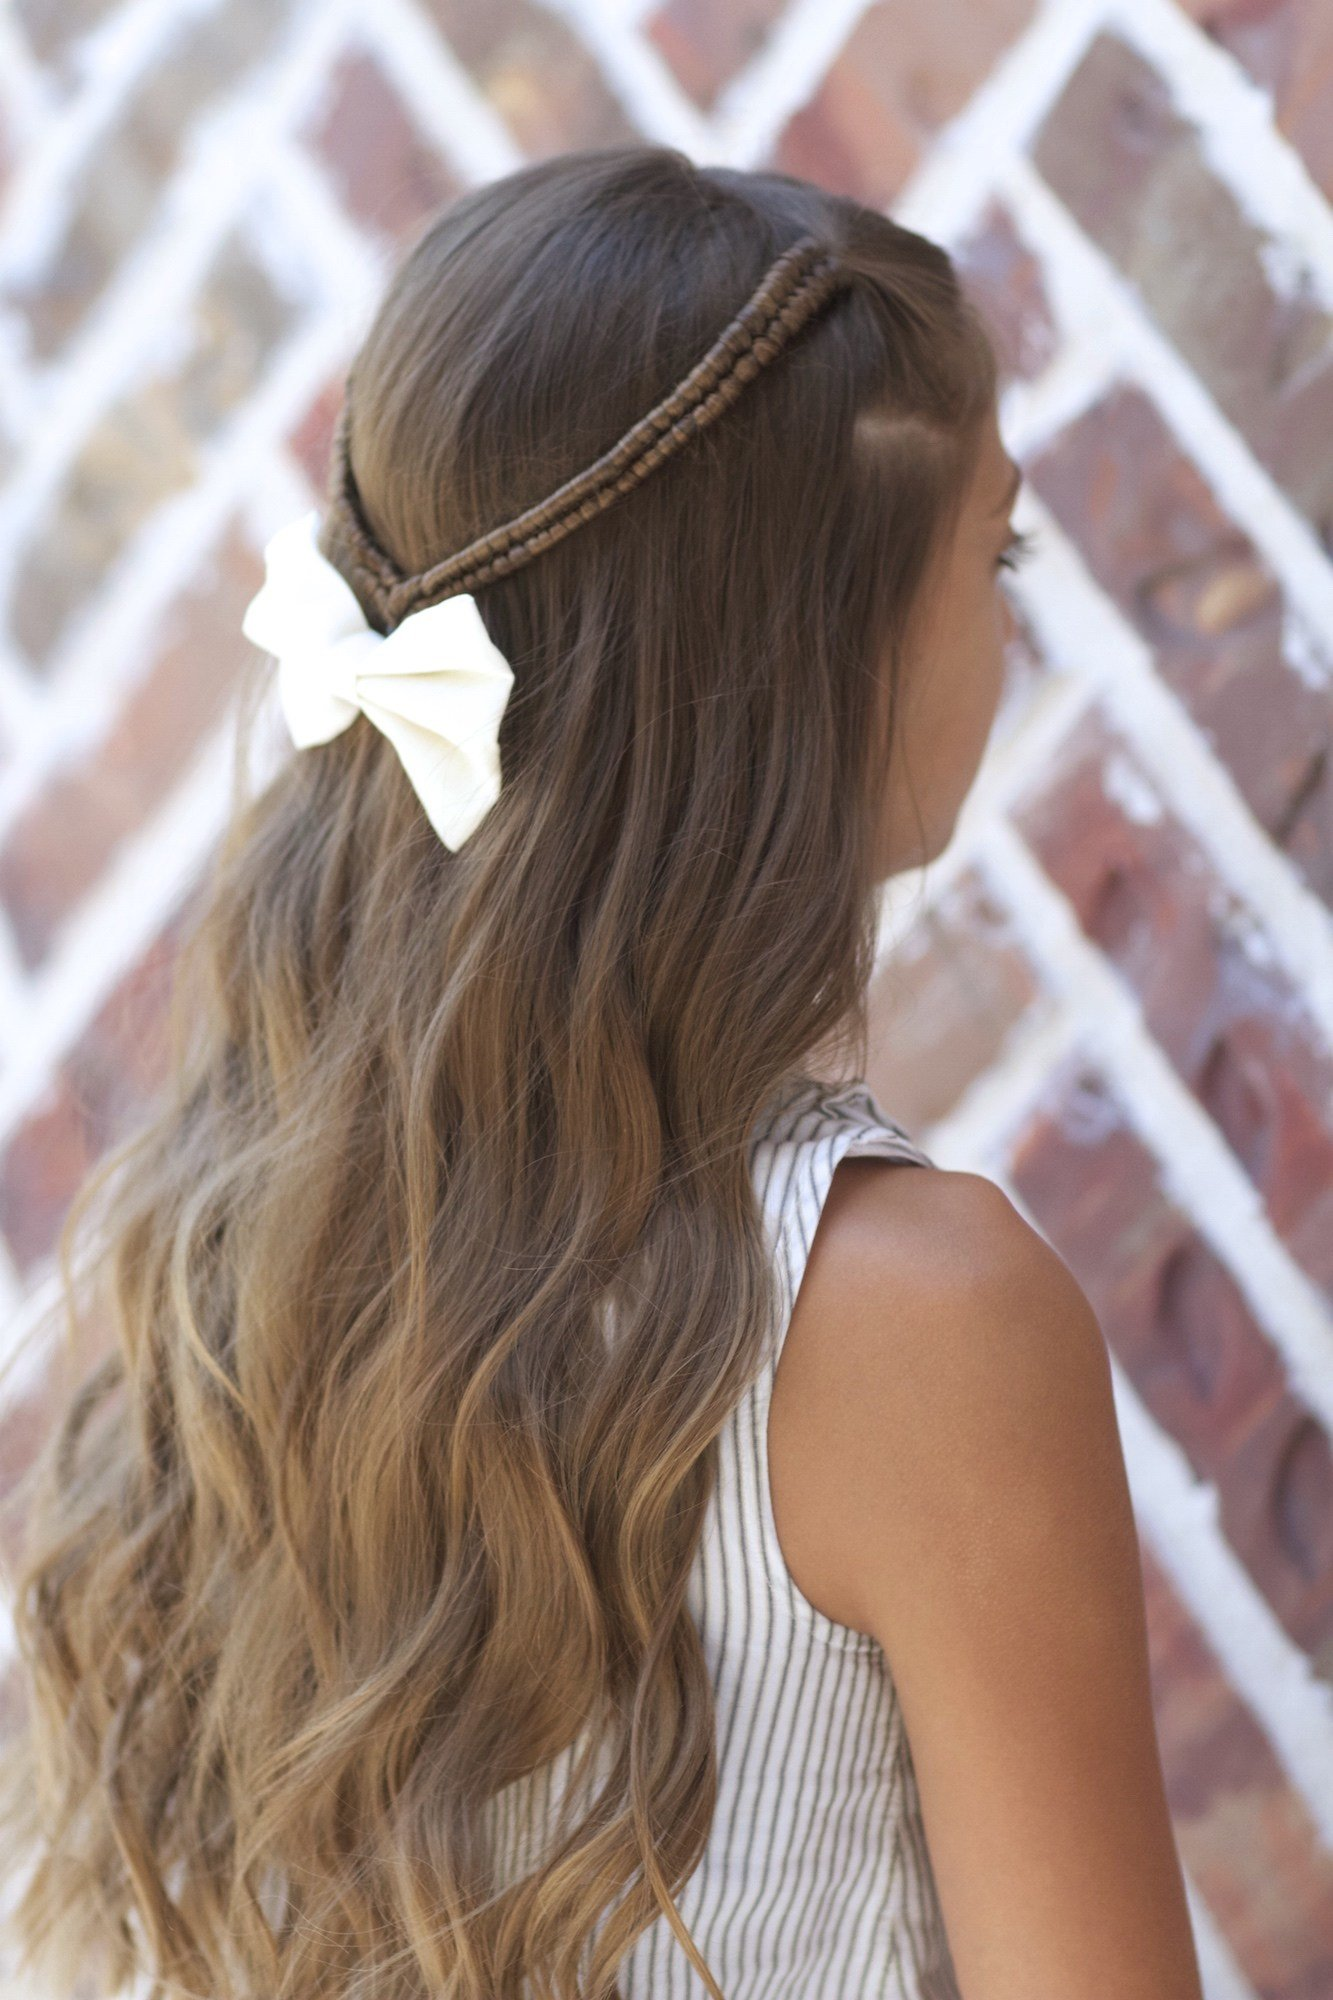 New Infinity Braid Tieback Back To School Hairstyles Cute Ideas With Pictures